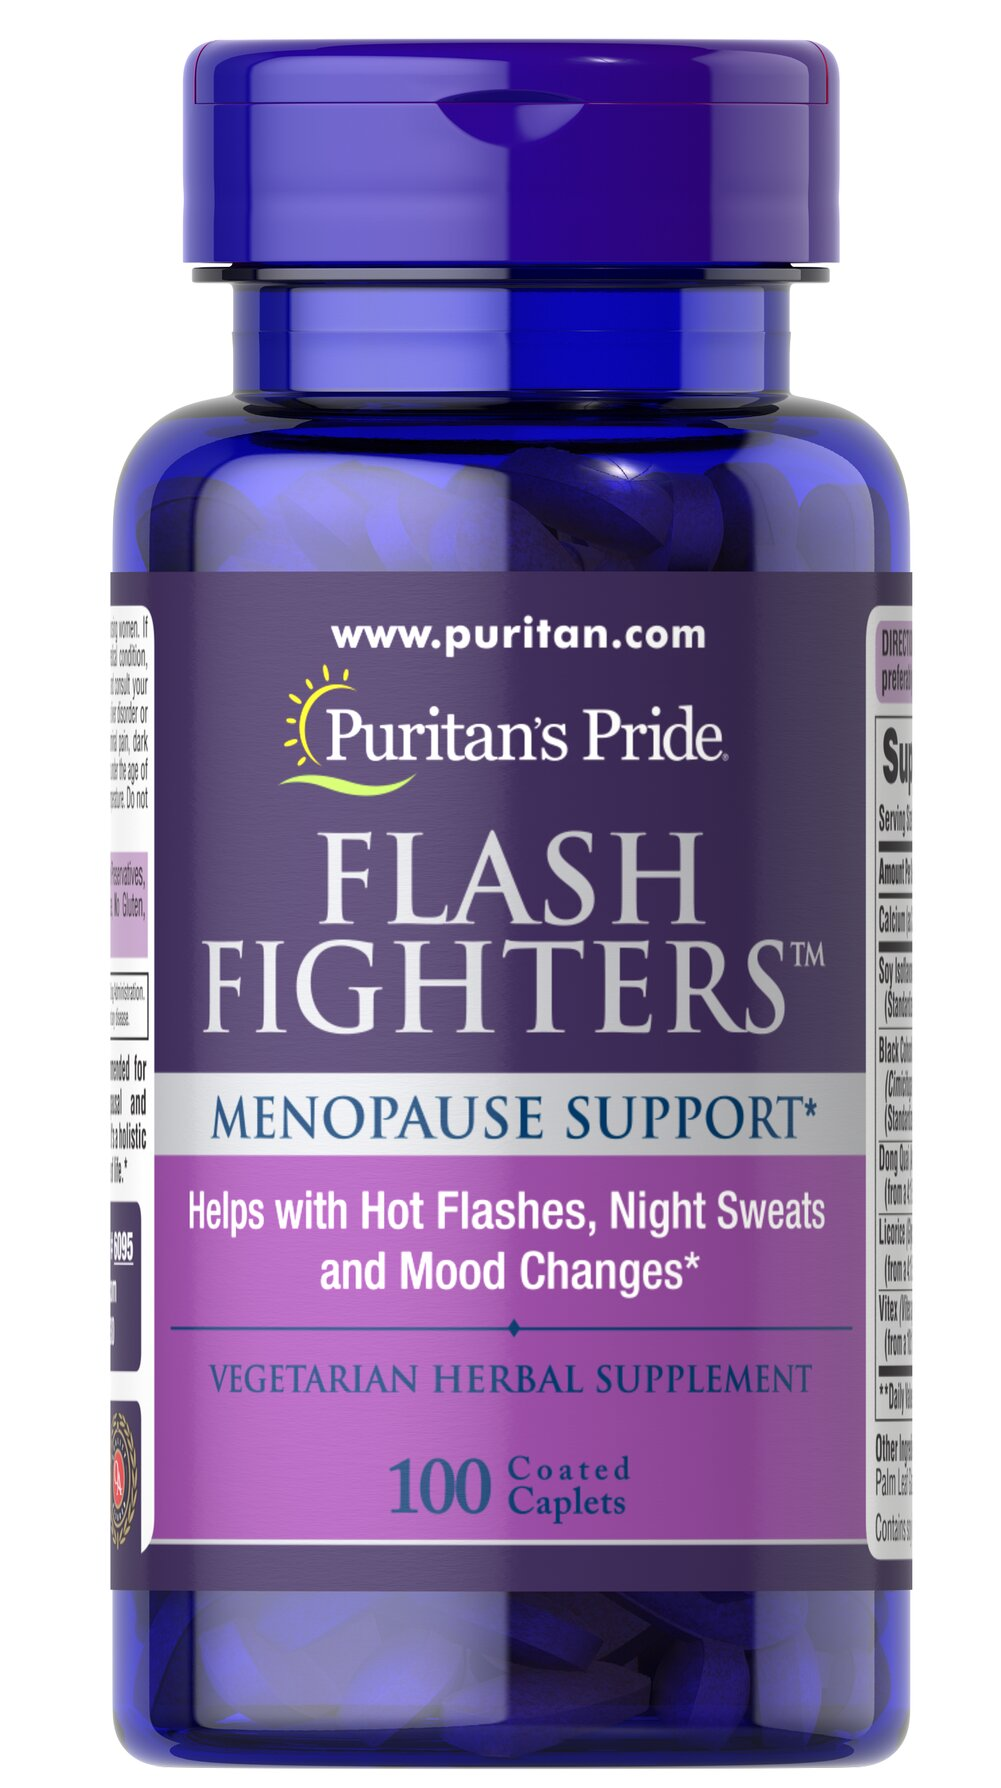 Flash Fighters™ <p>A combination of ingredients including Black Cohosh, Calcium, Soy, and more to help support the health of women during menopausal changes**</p> 100 Caplets  $24.99